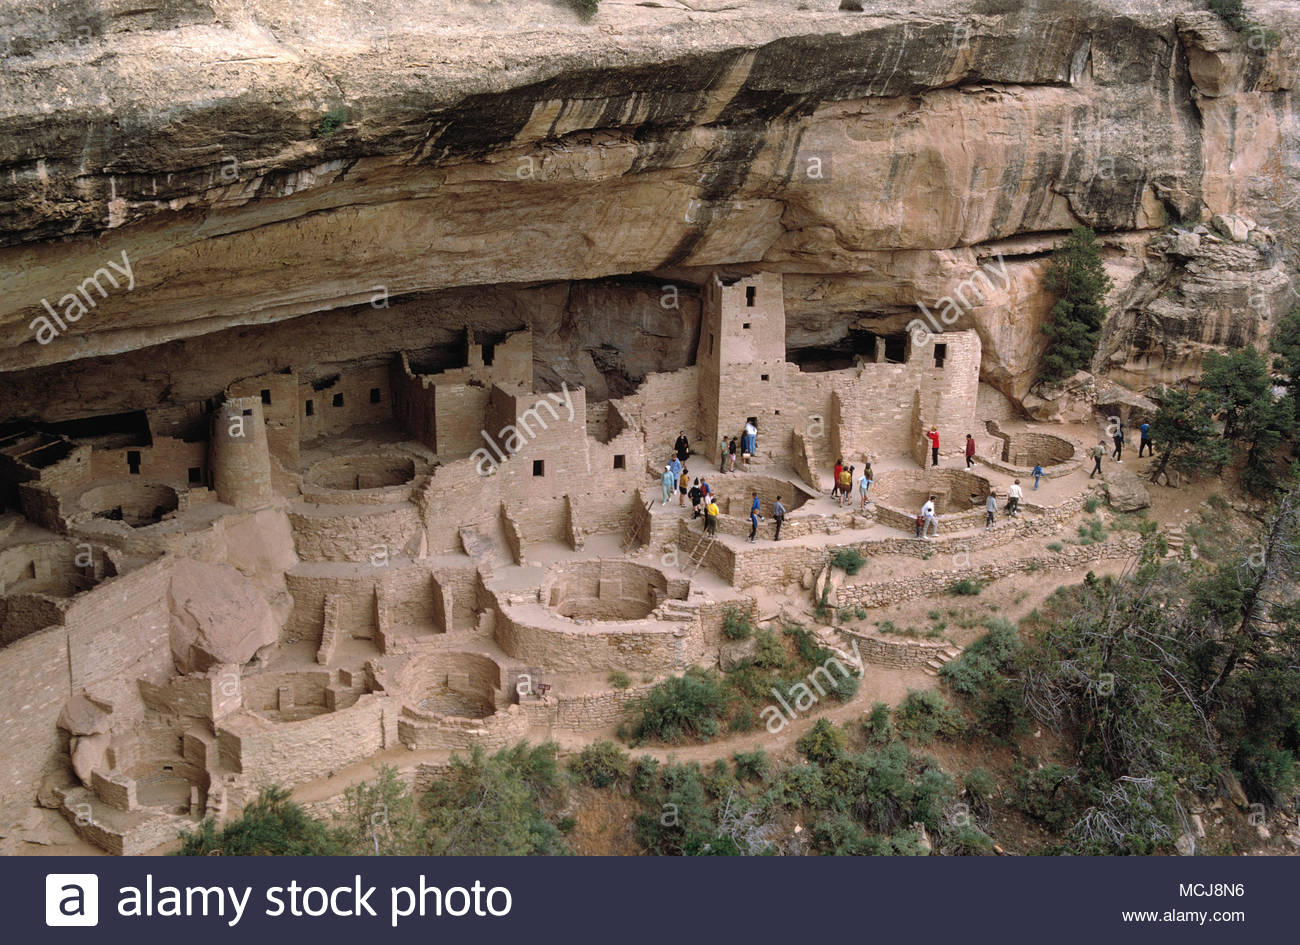 USA. Colorado. Mesa Verde National Park. Ancestral Puebloan cliff dwellings. - Stock Image